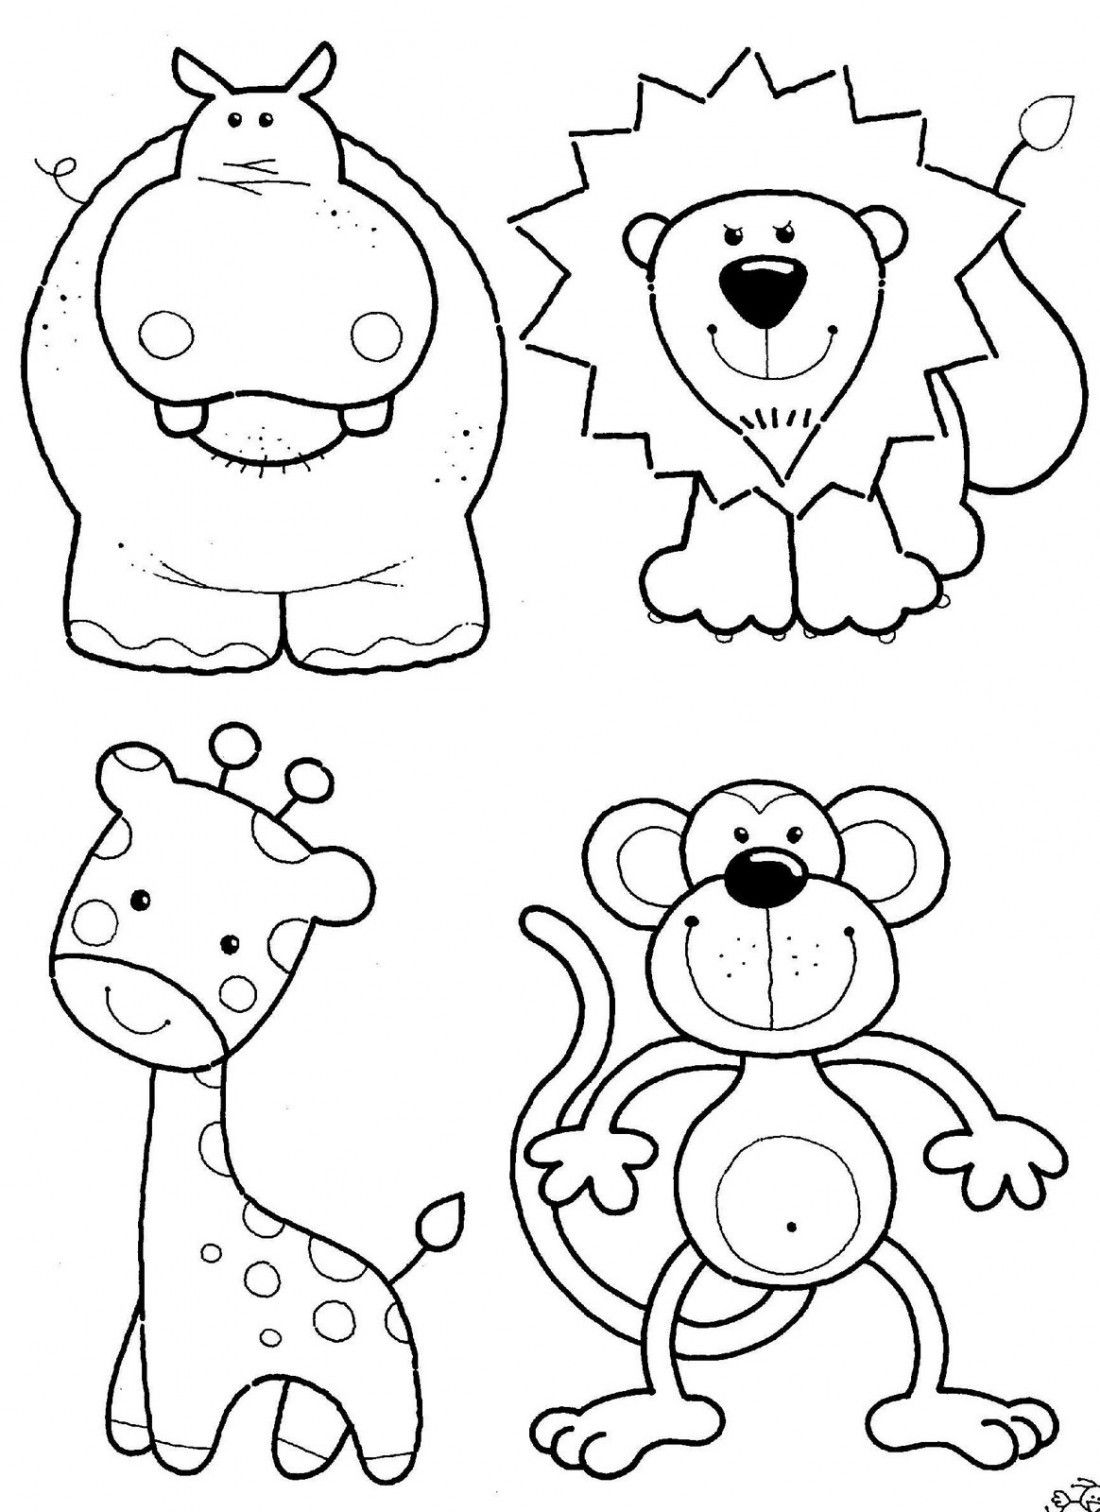 Animal Coloring Pages For Kids Free | Theme ideas | Pinterest ...